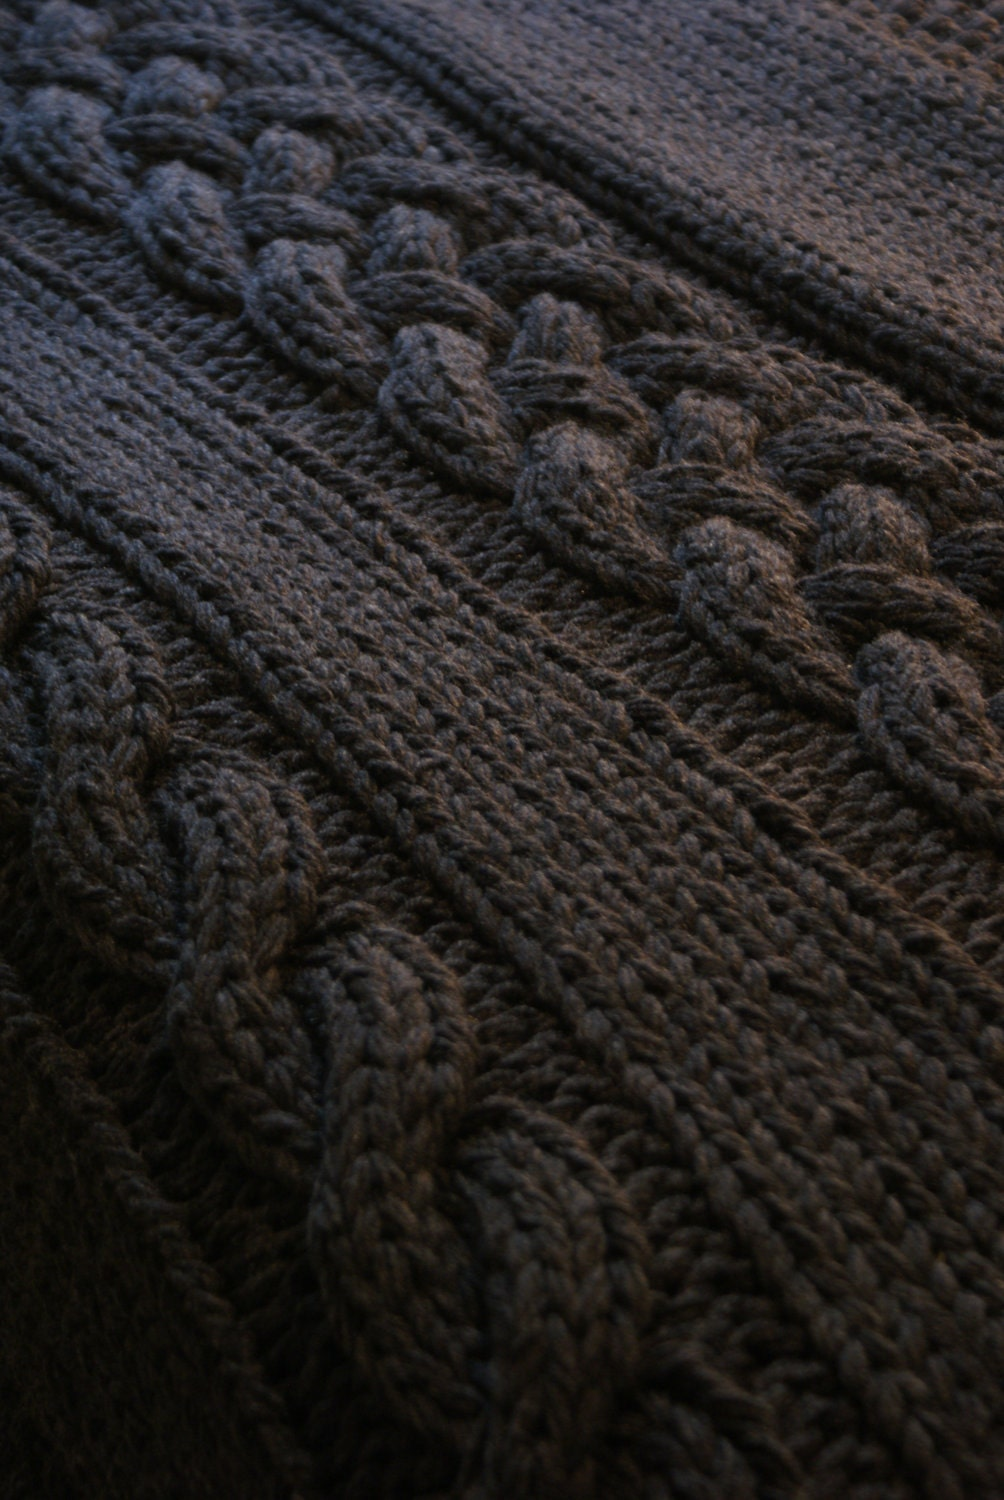 Double Chunky Knitting Patterns : Throw Blanket Super Chunky Double Cable Acrylic Throw by Midknits